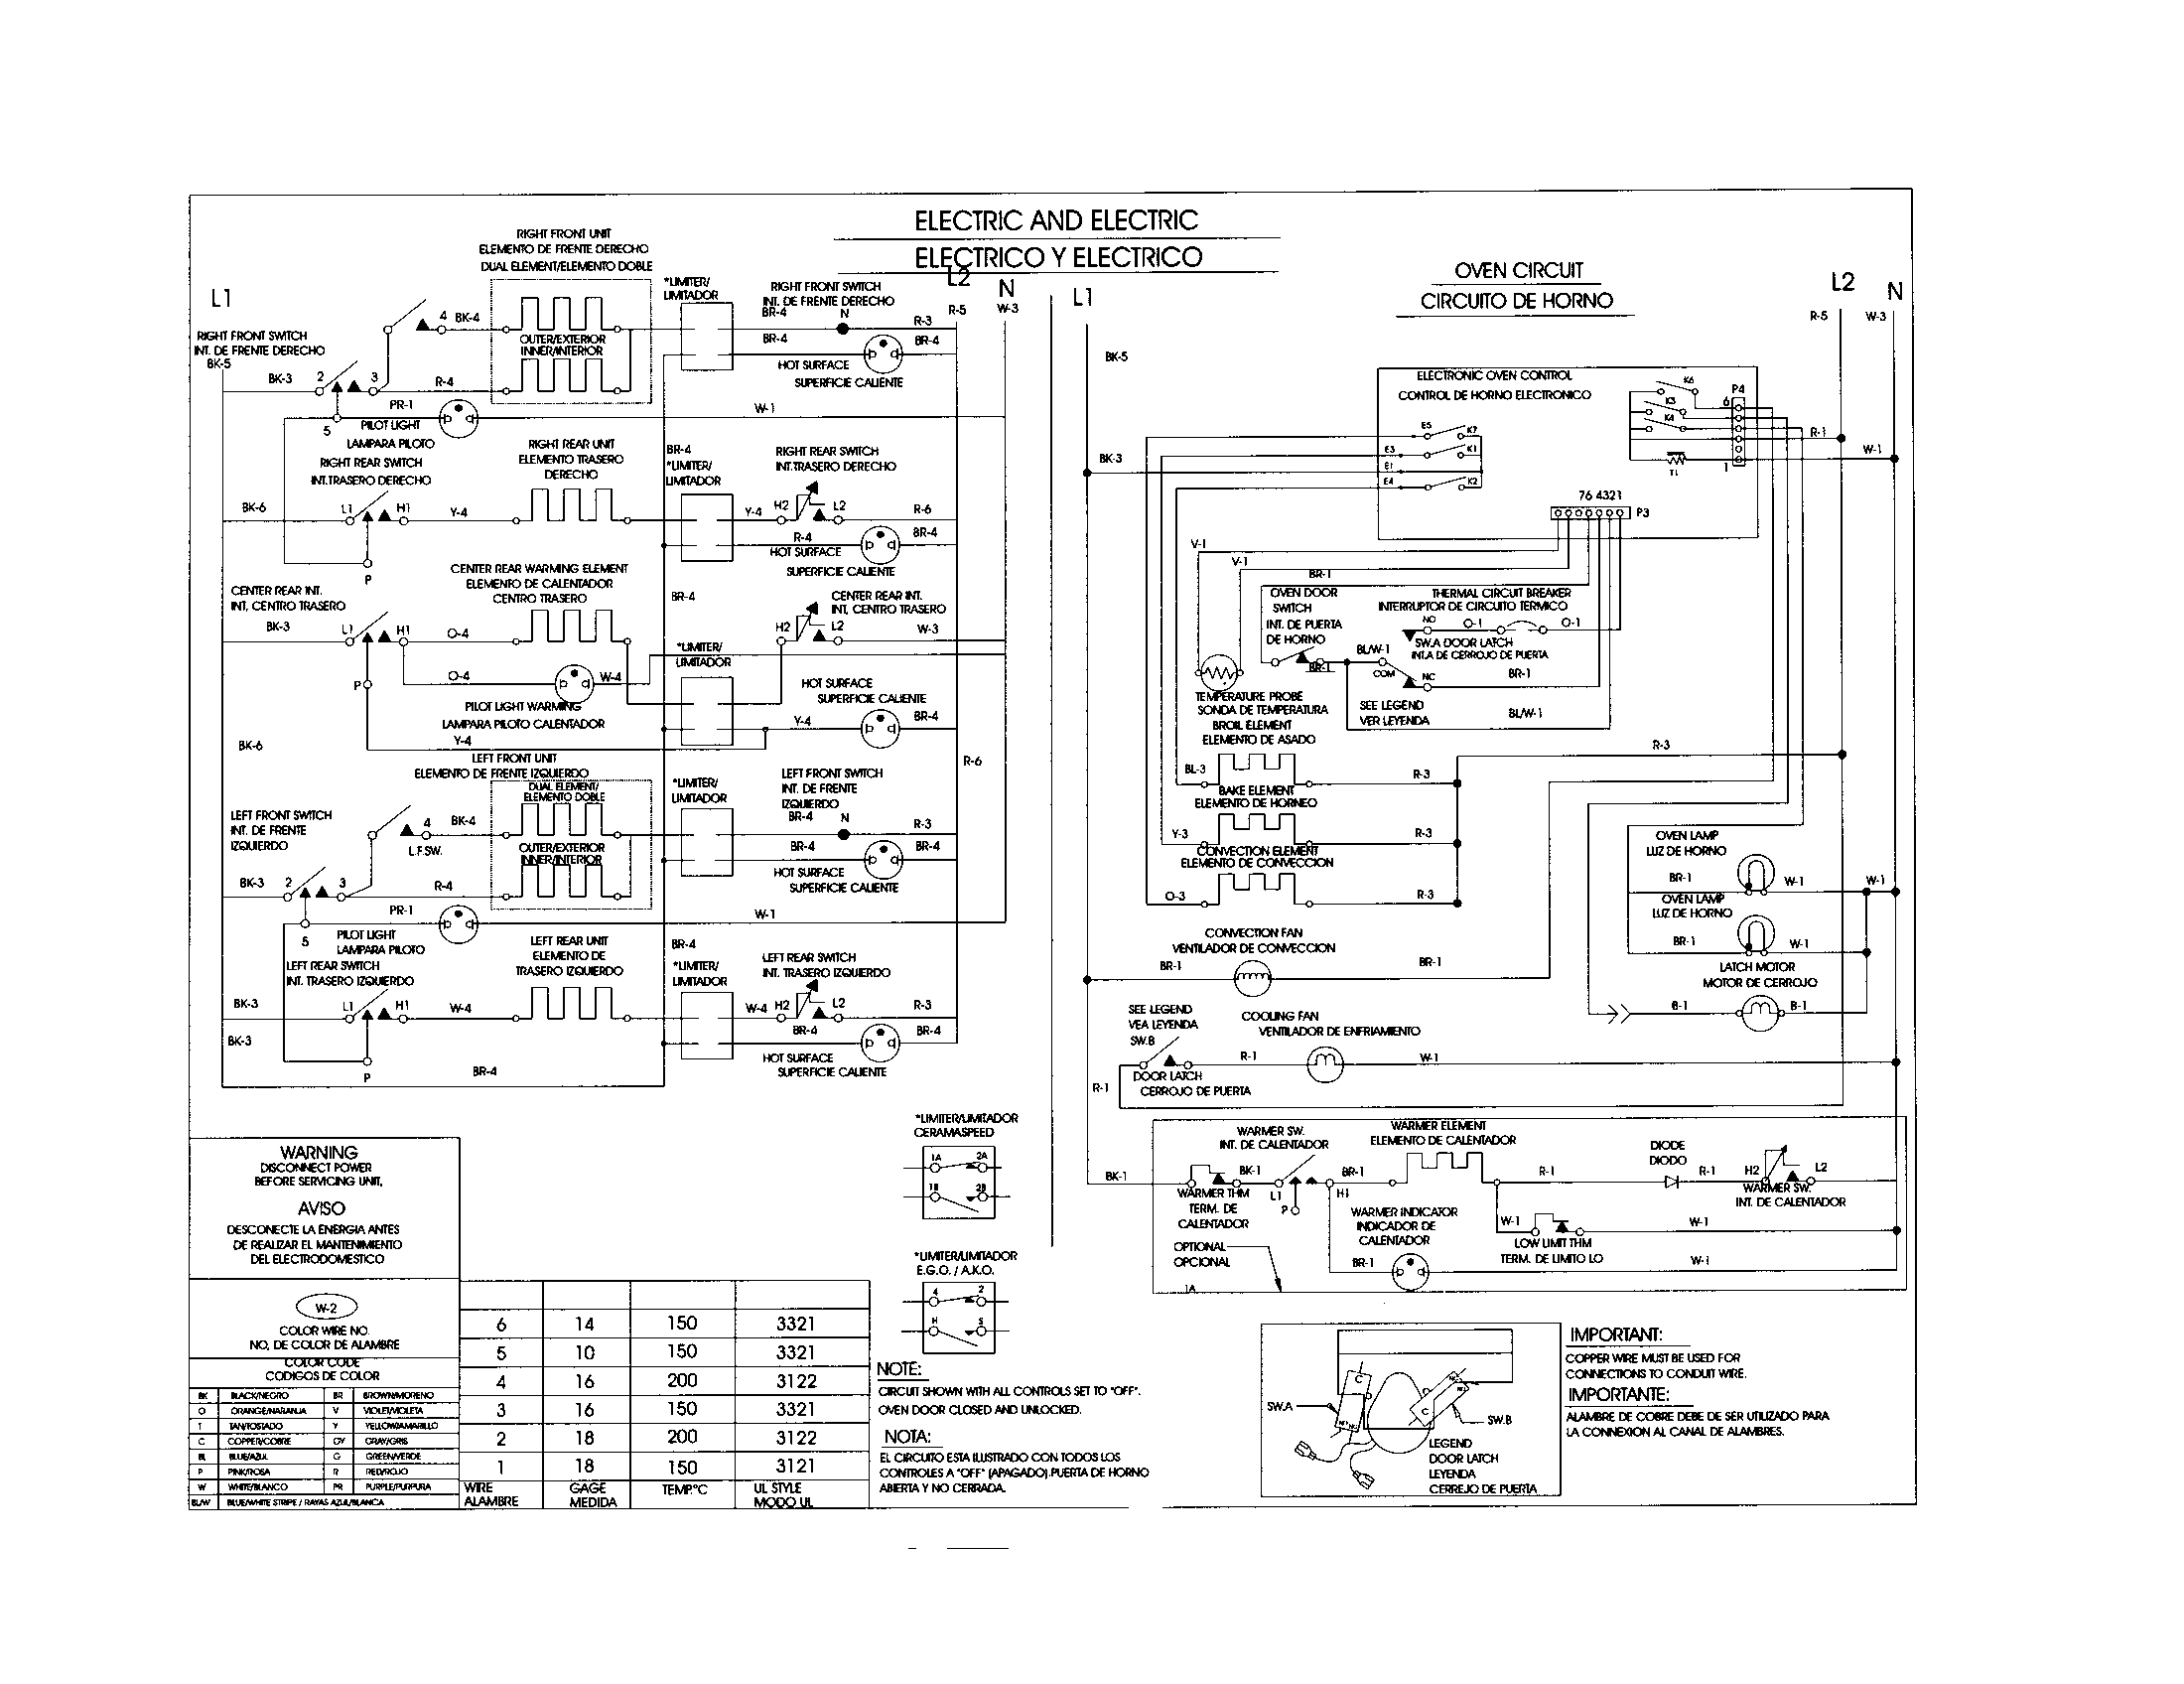 kenmore dishwasher wiring diagram to wiring diagram parts with regard to kenmore elite dishwasher 665 parts diagram kenmore dishwasher wiring diagram kenmore wiring diagrams collection hobart am 14 wiring diagram at honlapkeszites.co